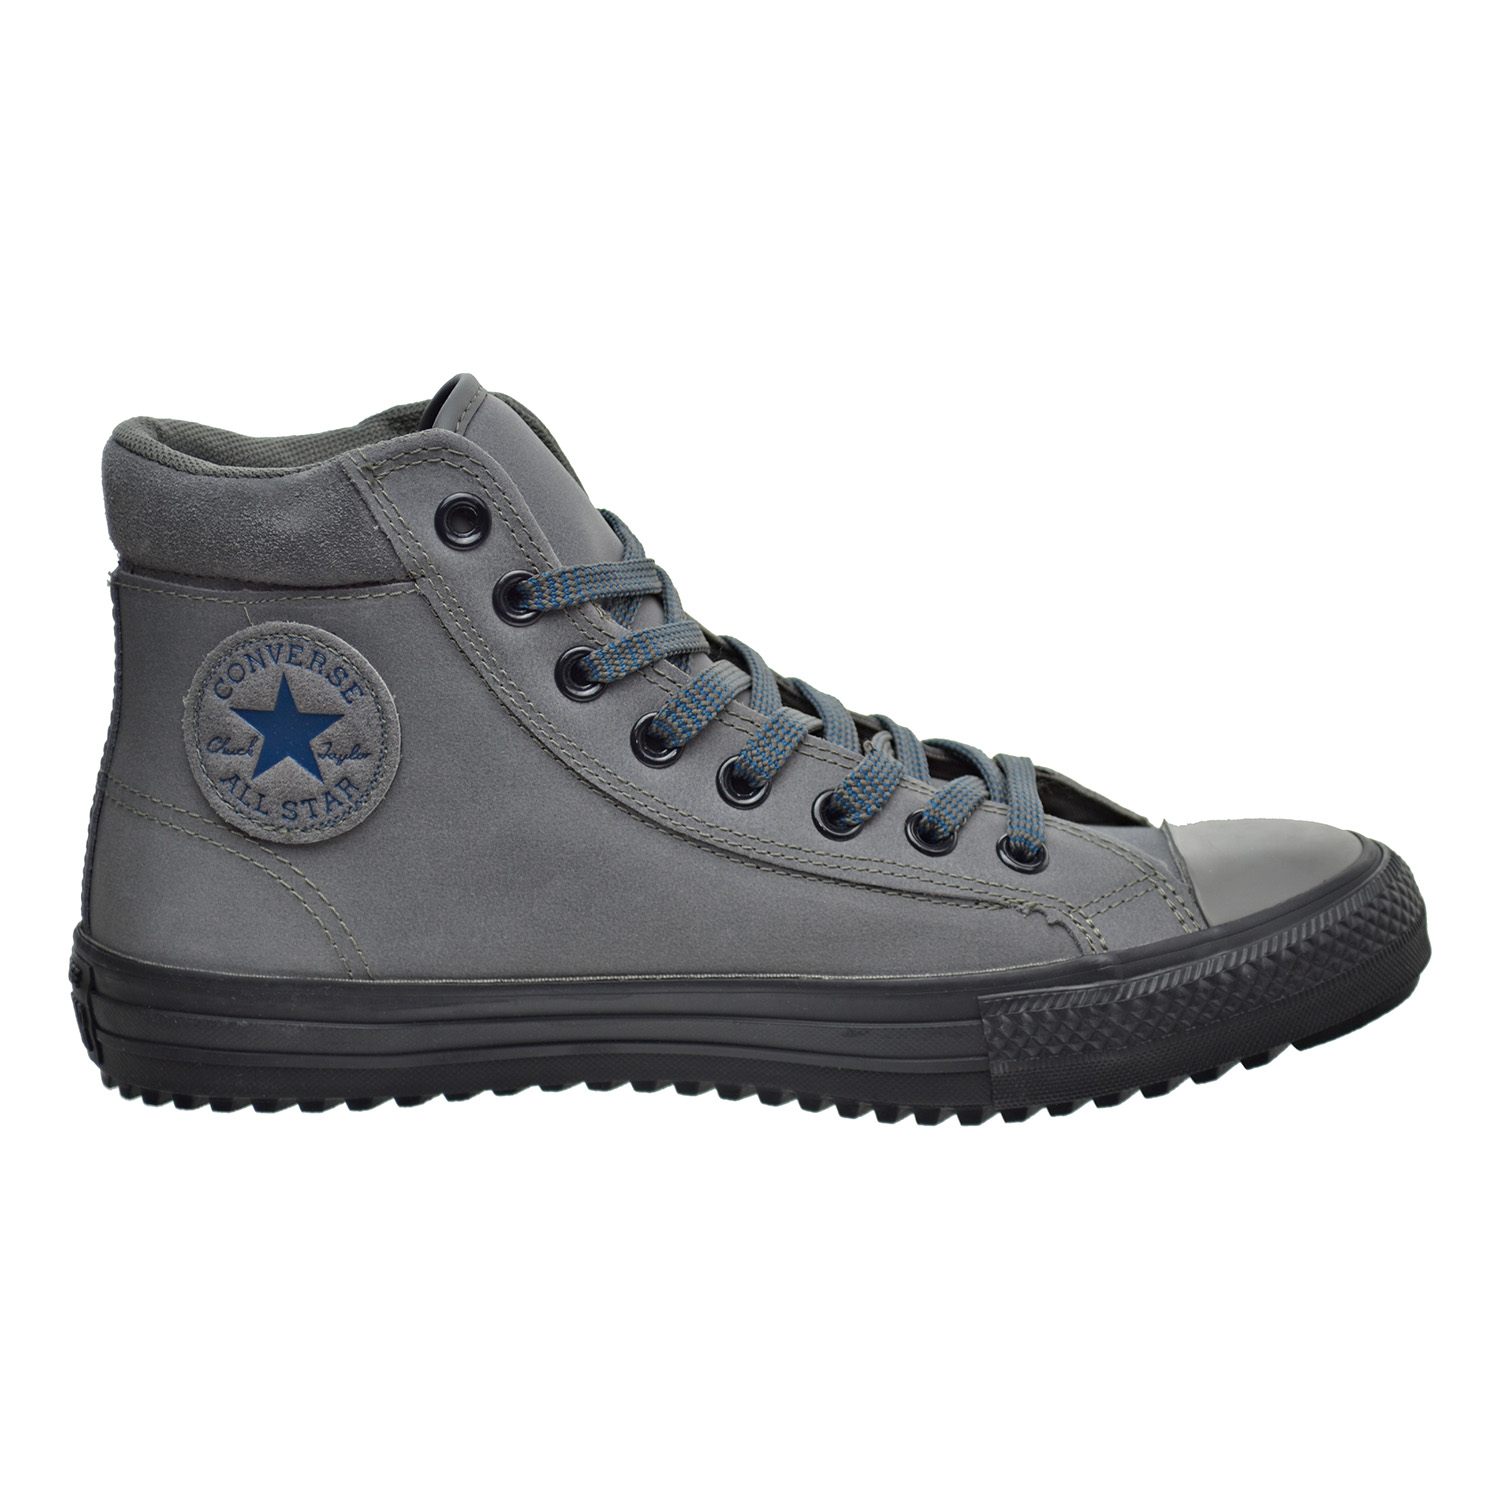 Converse Chuck Taylor All Star PC High Top Unisex Boots C...